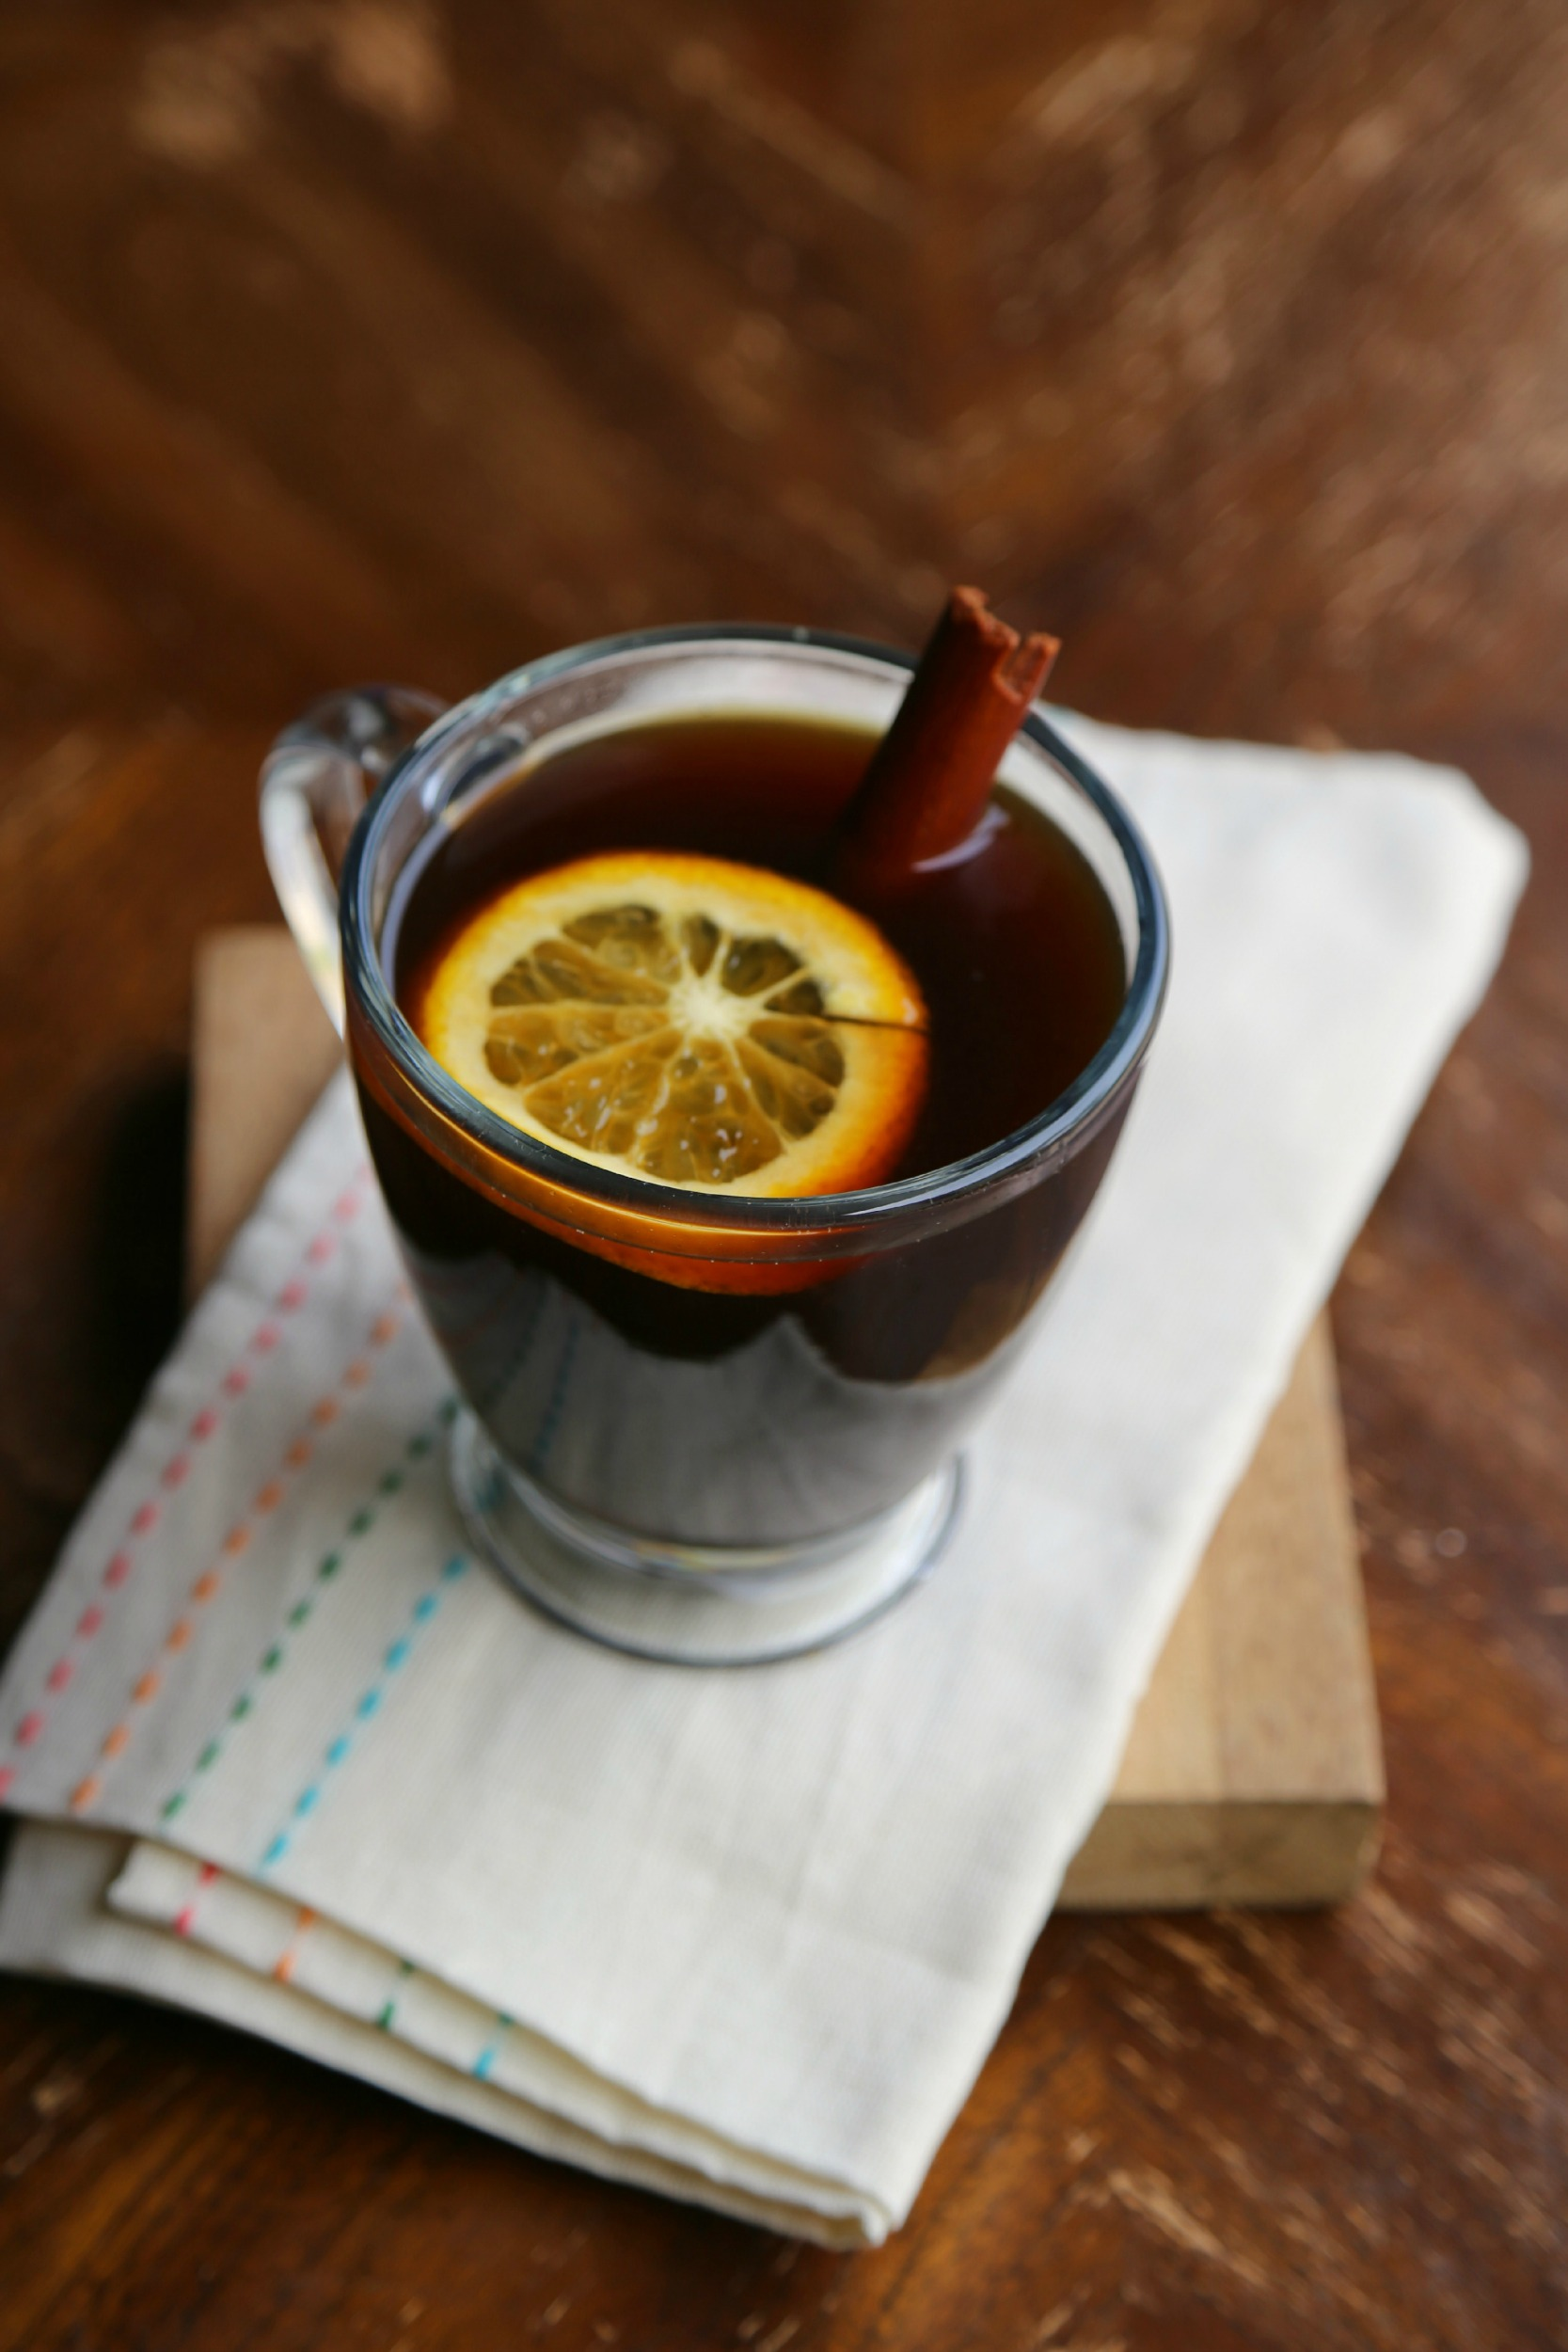 cafe-de-olla-cinnamon-orange-cafe-VianneyRodriguez-sweetlifebake